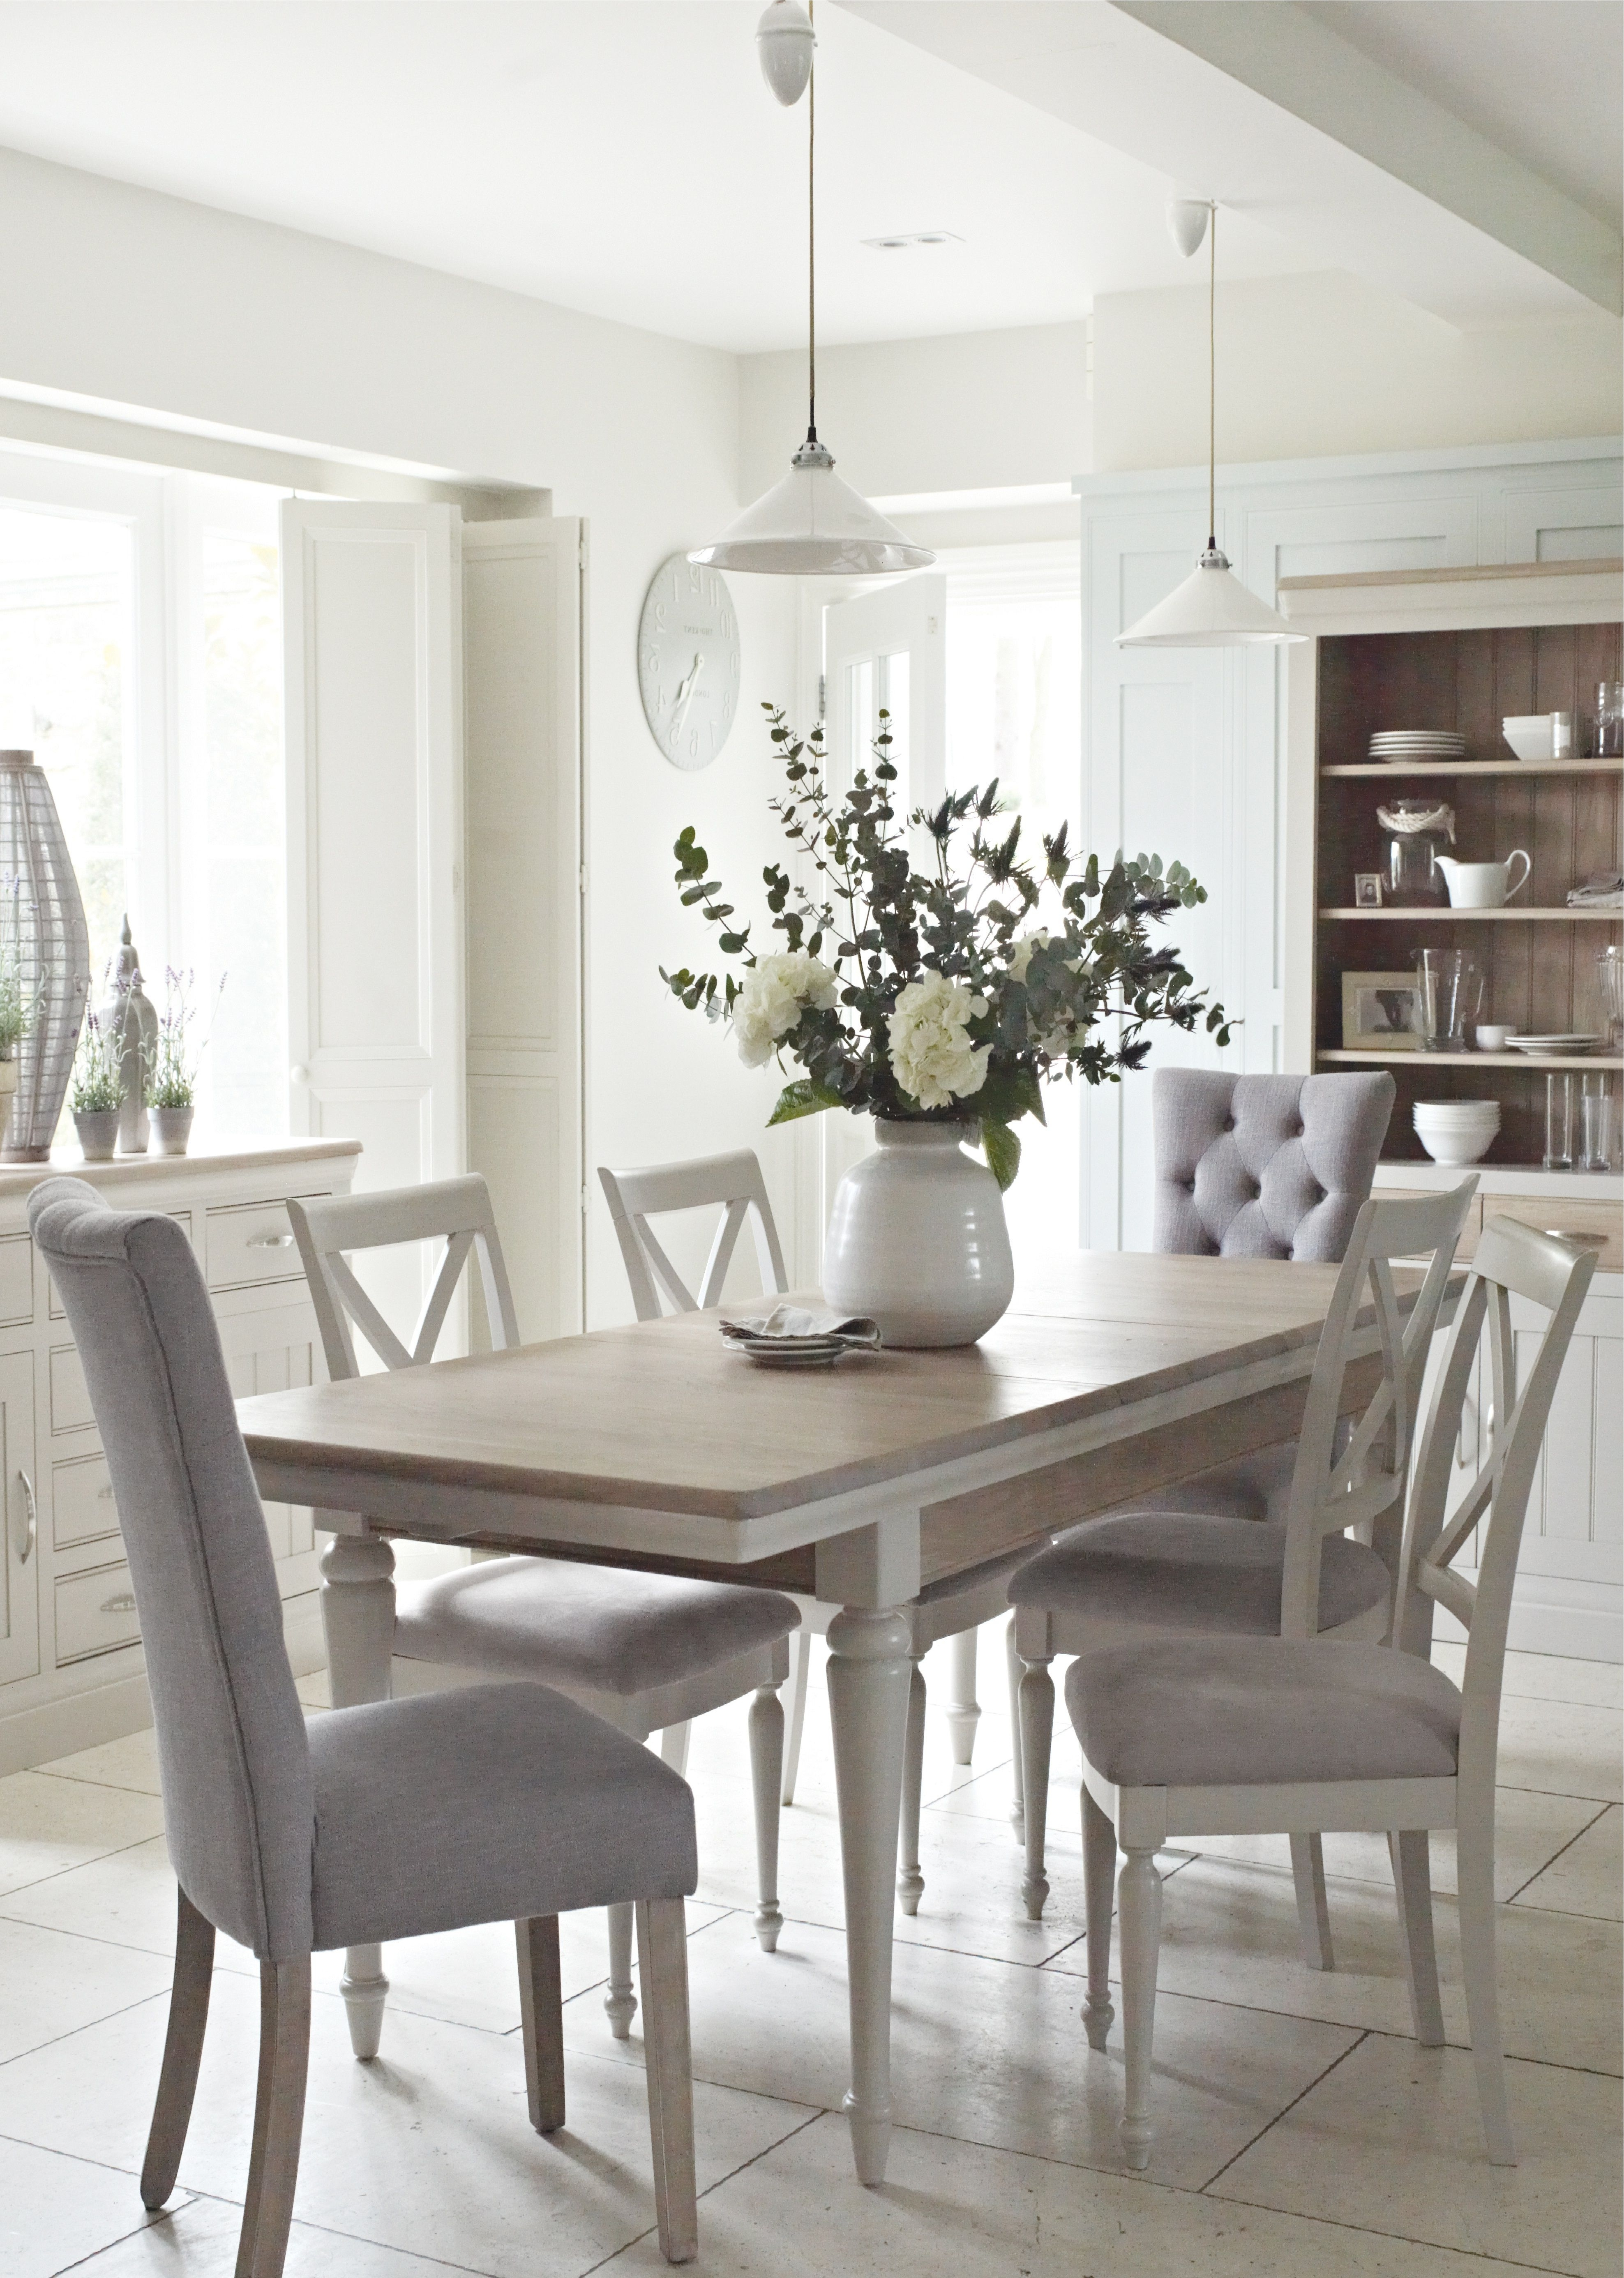 Most Recent Lassen 5 Piece Round Dining Sets Regarding The Classic Bambury Dining Range Just Oozes Country Chic (View 15 of 25)